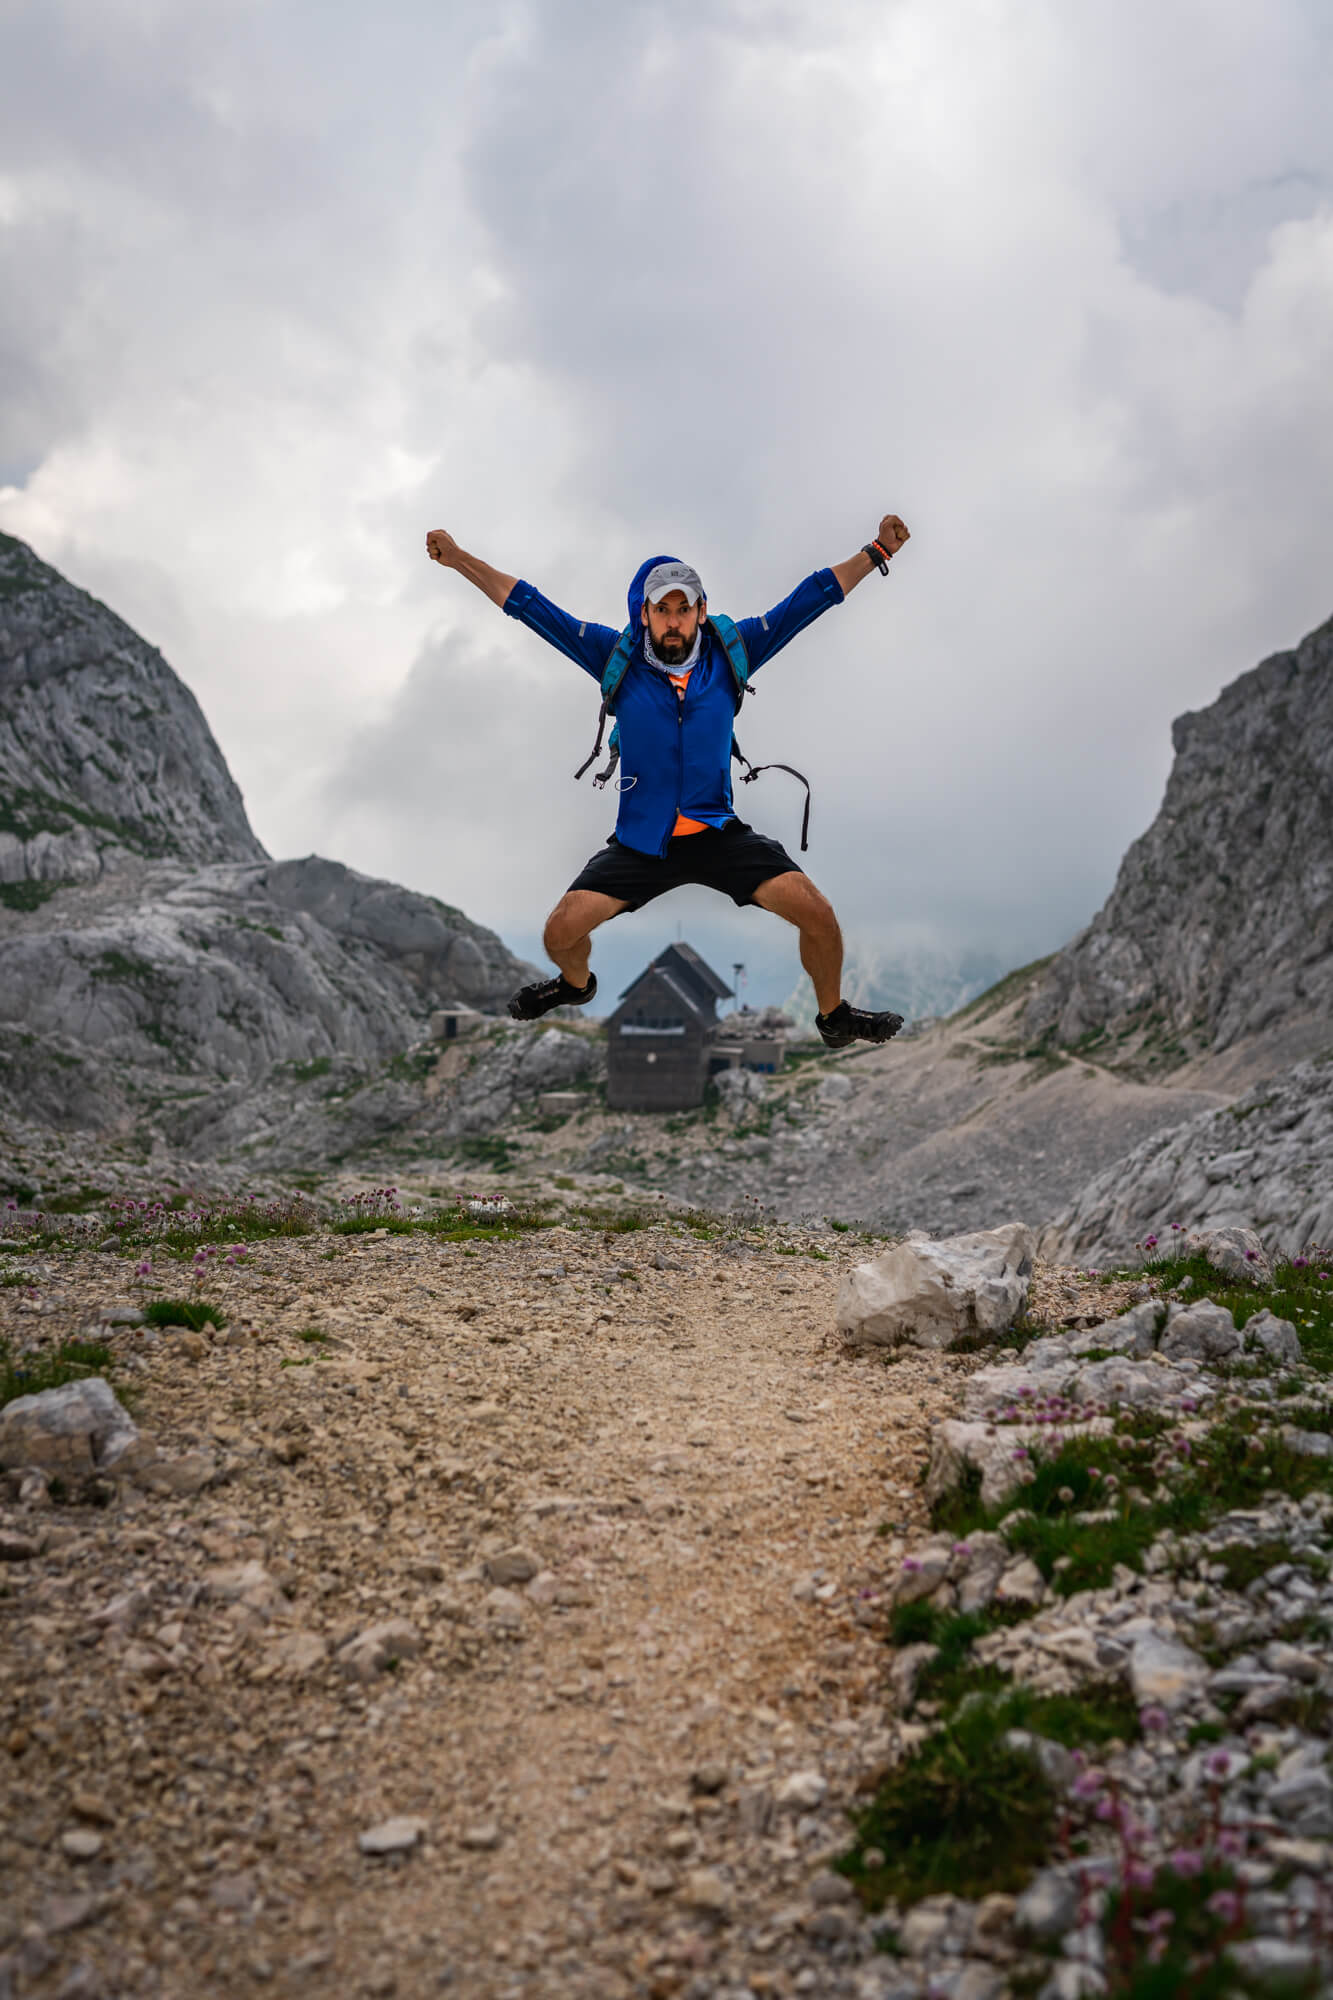 Hiker with Blue Jacket is Jumping above Dolic Hut, Julian Alps